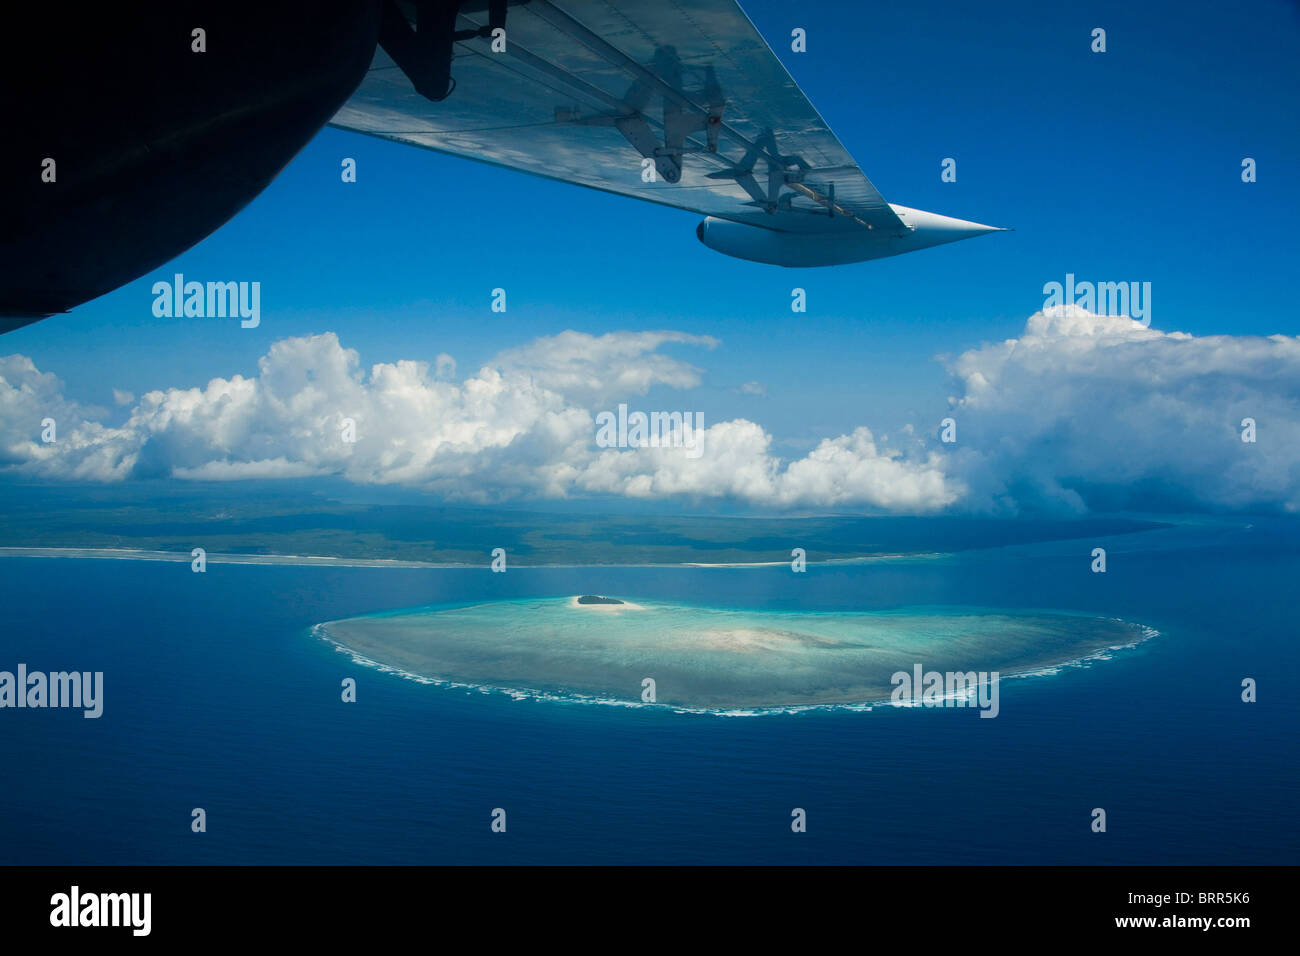 Aerial view of Mnemba Island with part of an aeroplanes wings in view - Stock Image